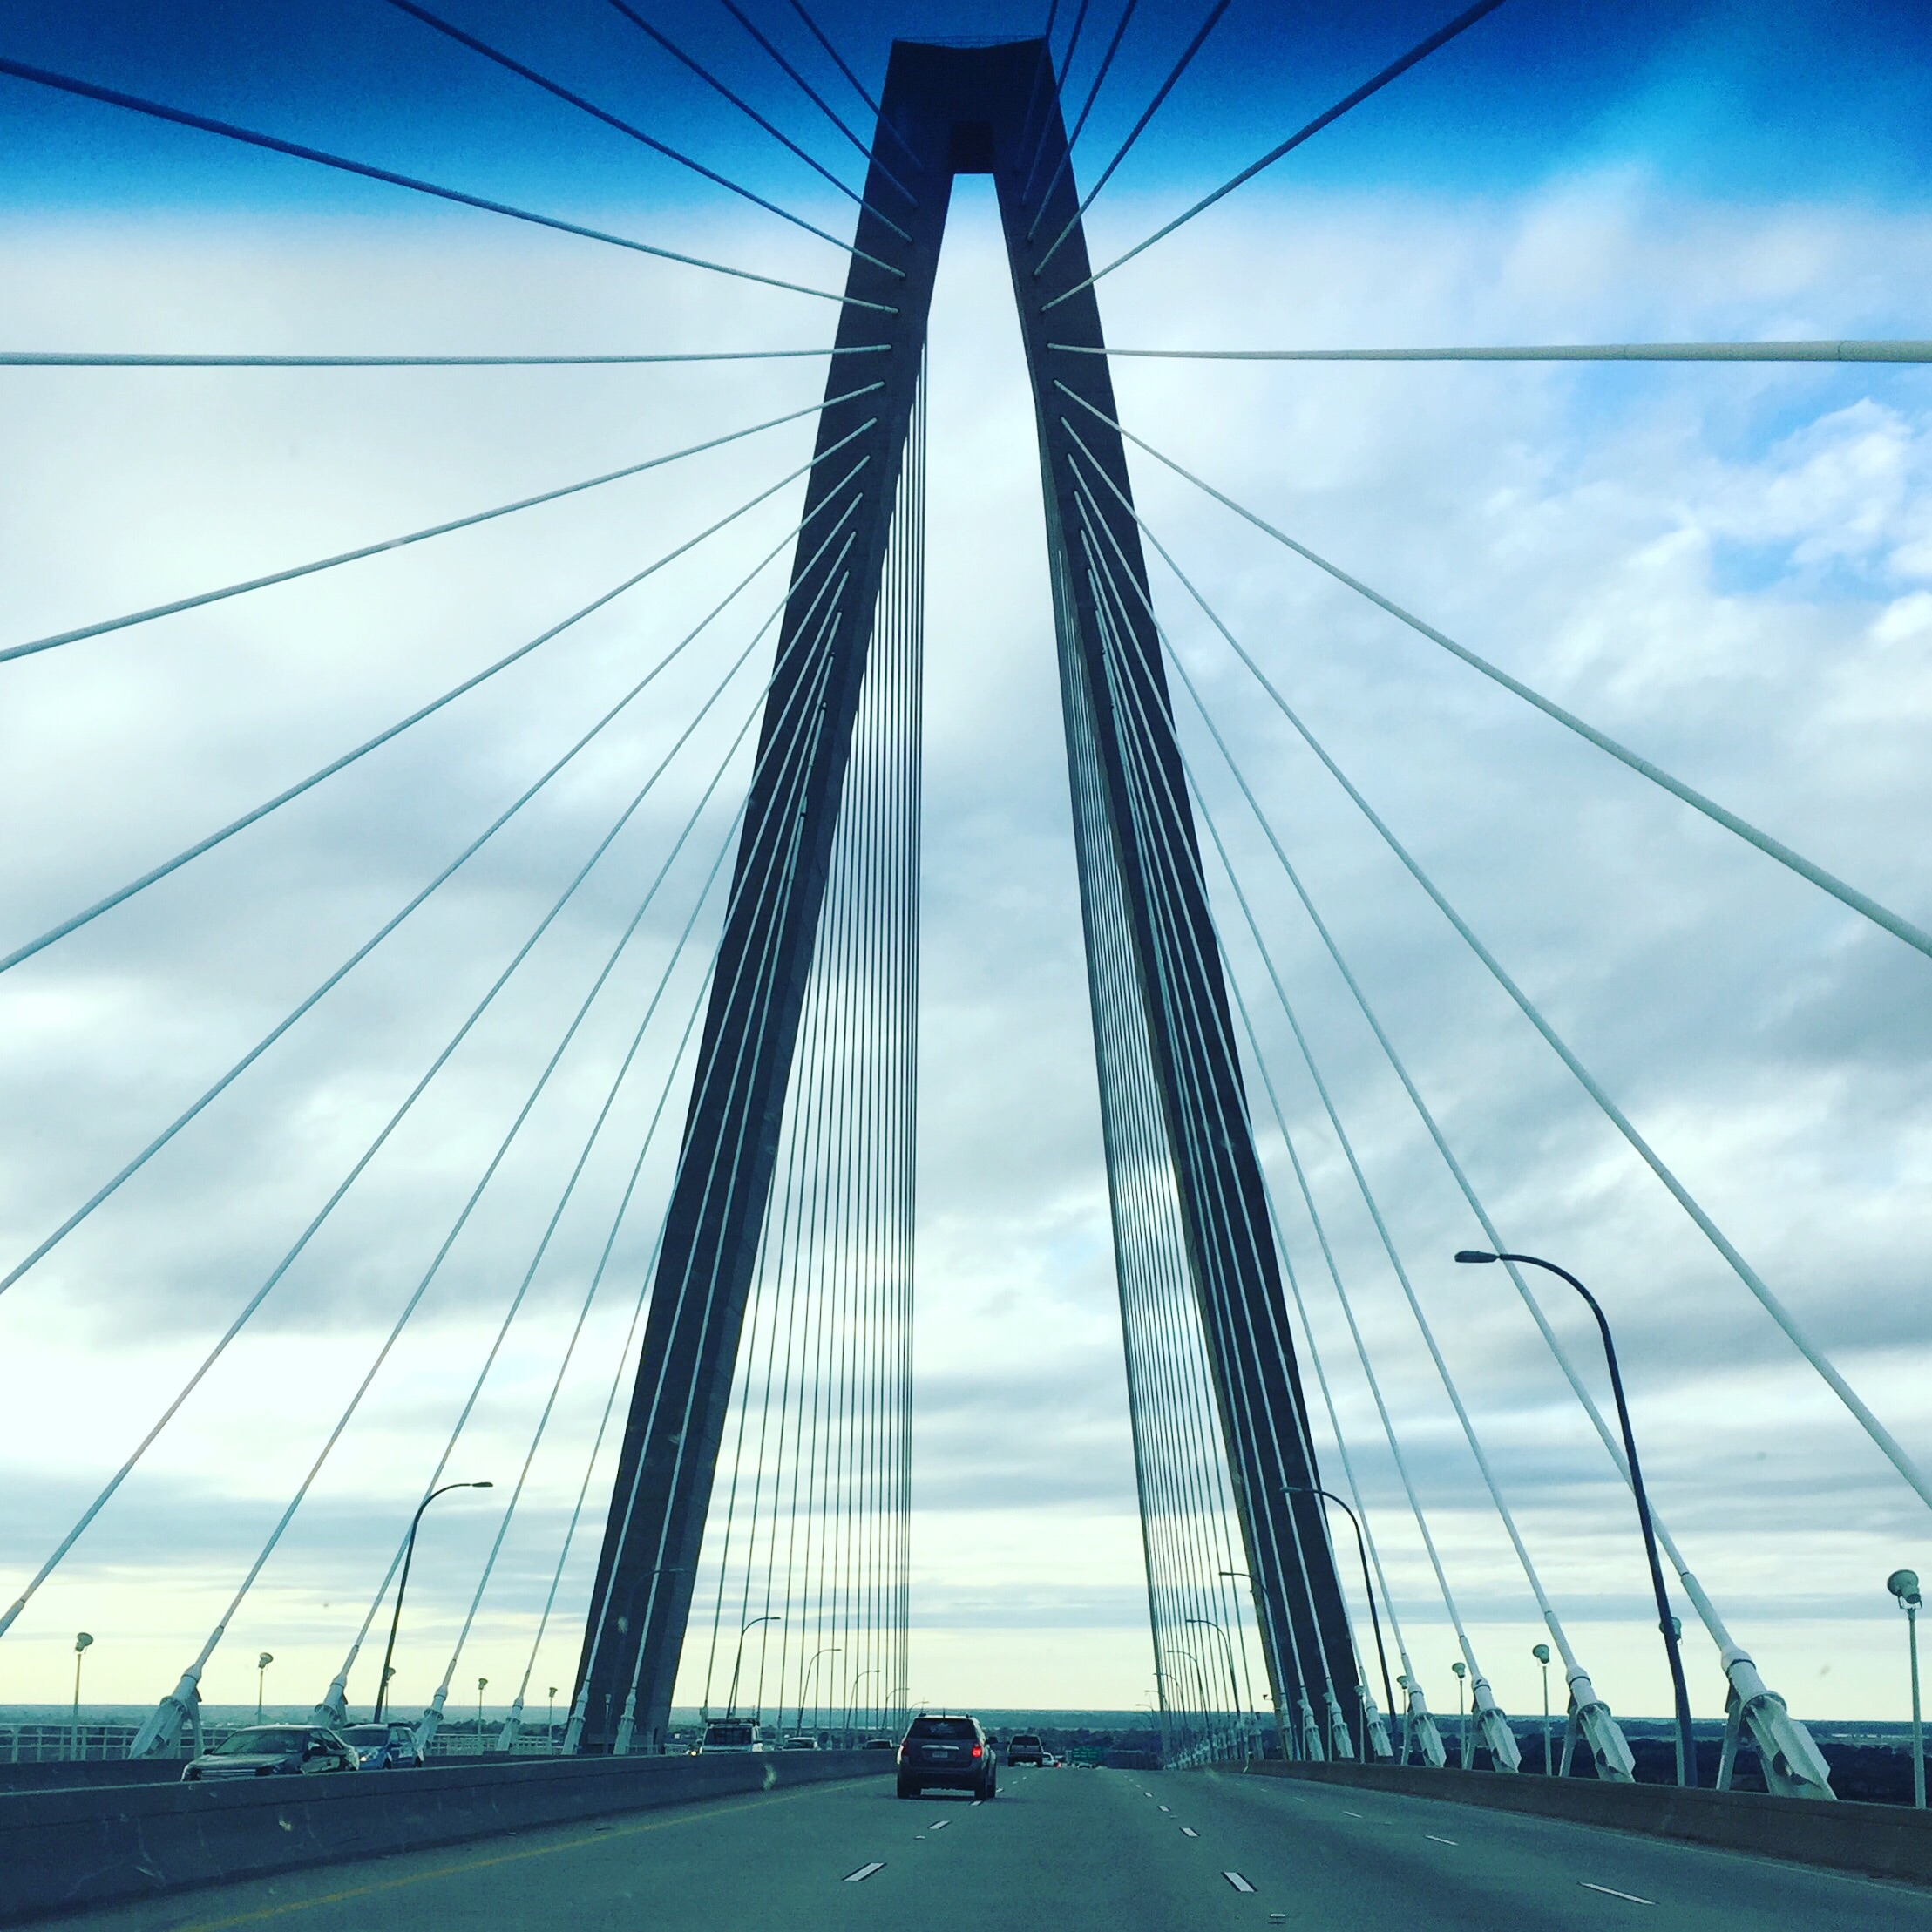 I have equal love and hate for this bridge. It's so super cool to drive under, but I hate bridges, let's be honest.